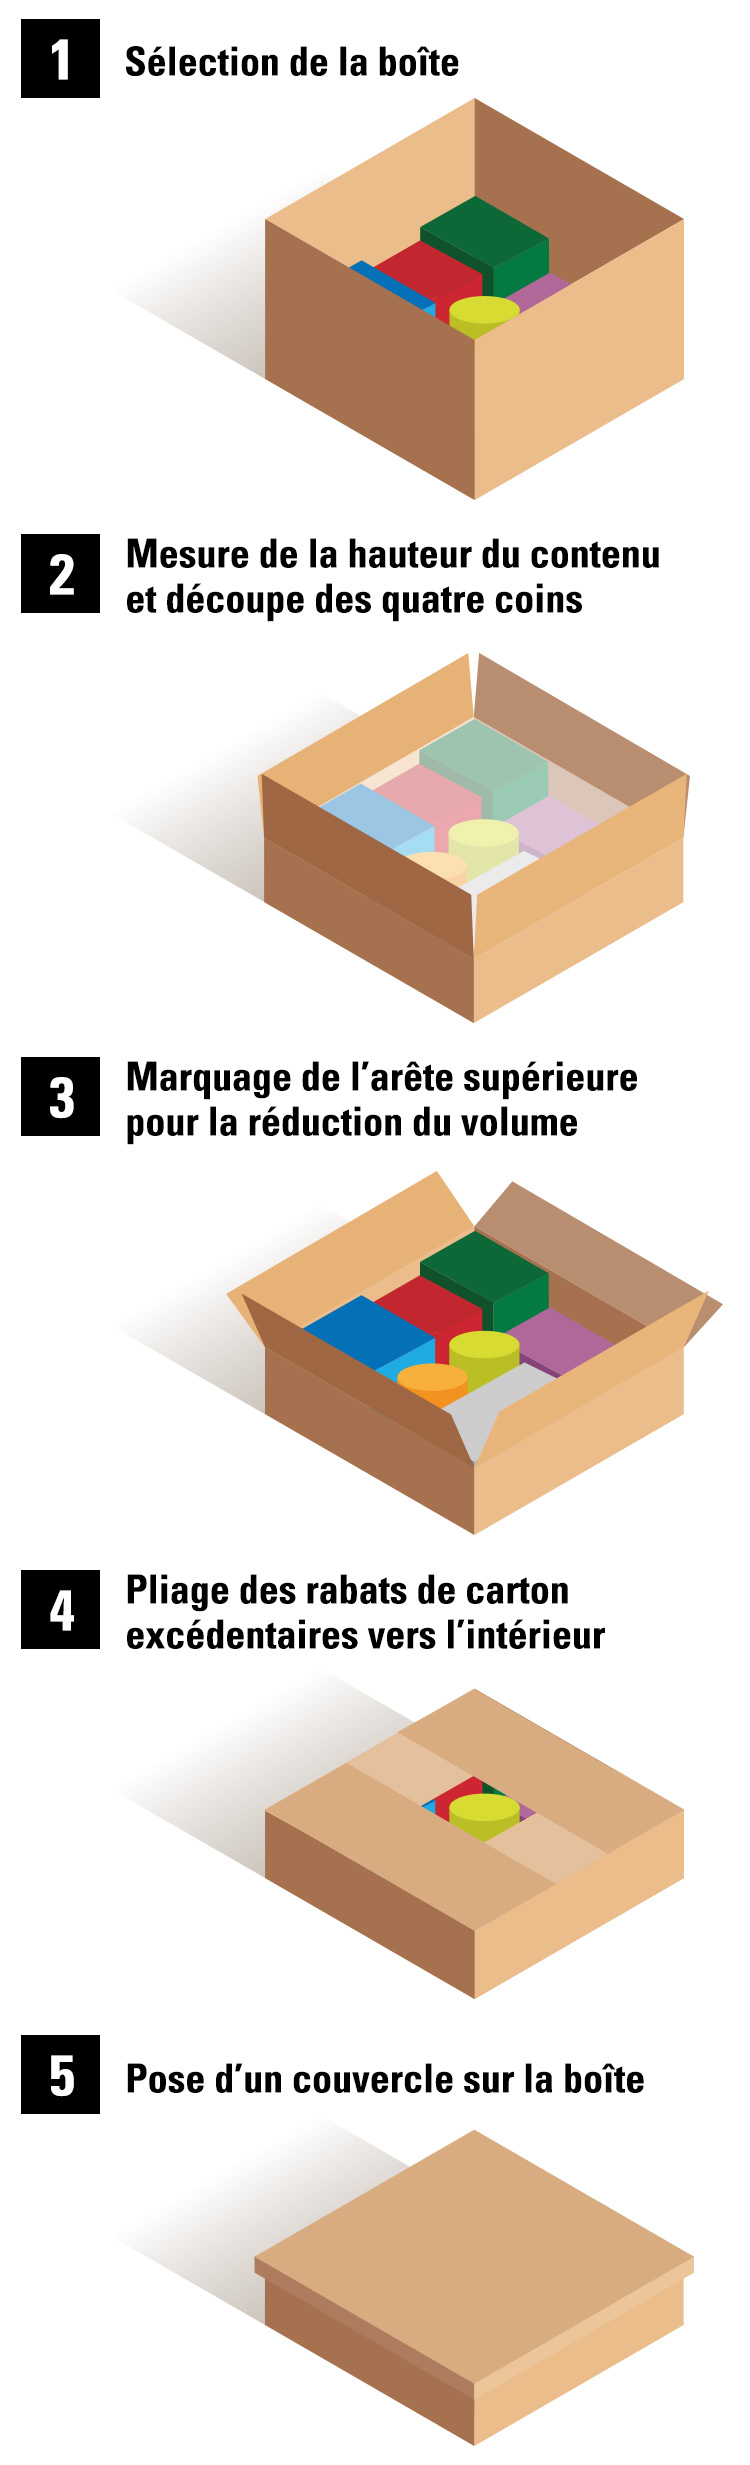 Packaging_content_images_2_FR